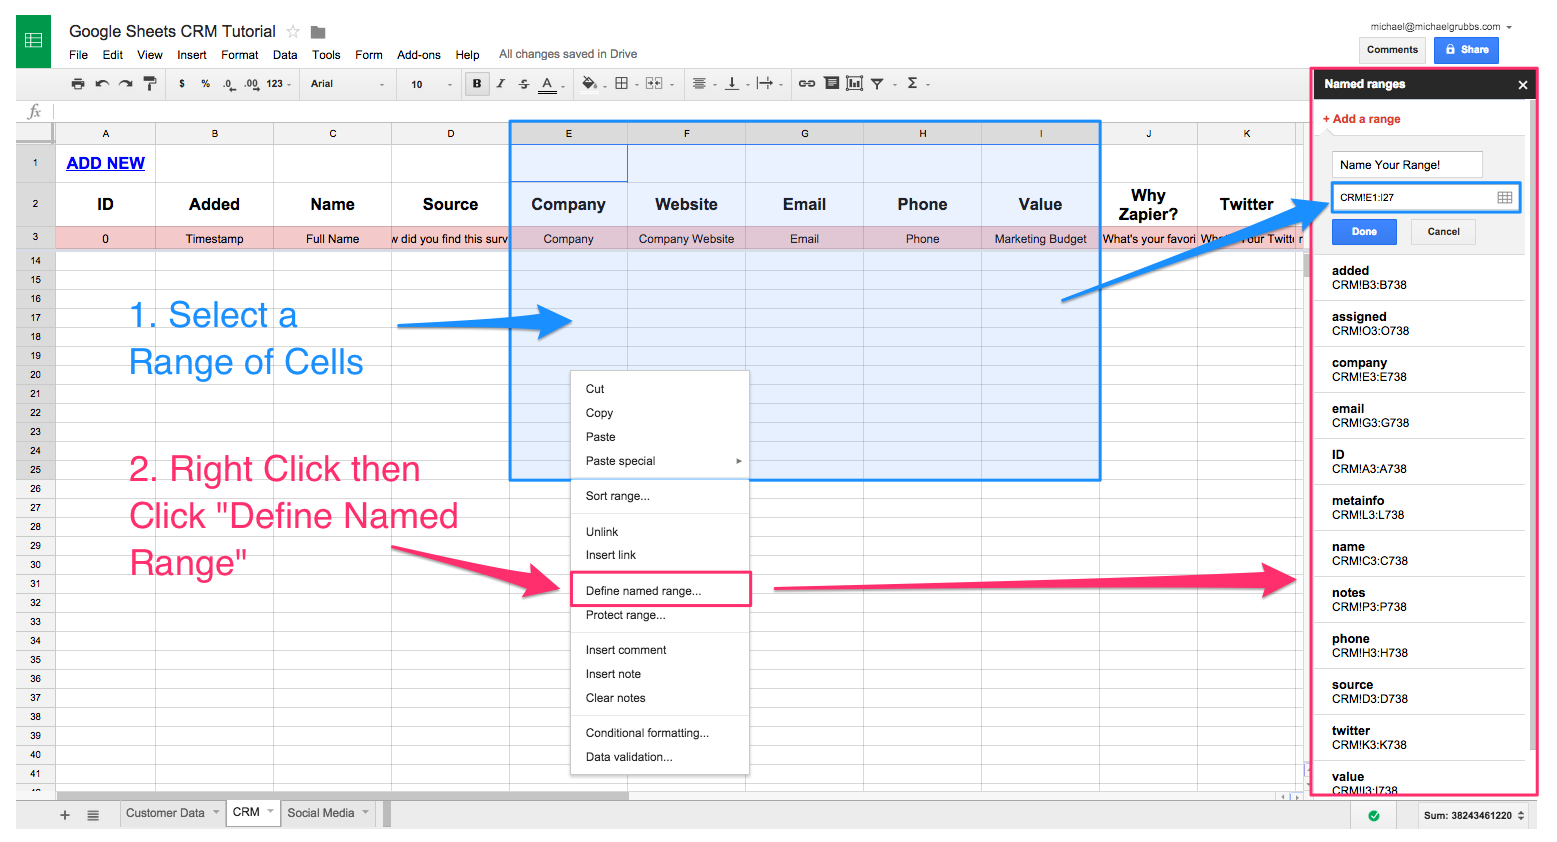 Contact Management Spreadsheet For Spreadsheet Crm: How To Create A Customizable Crm With Google Sheets